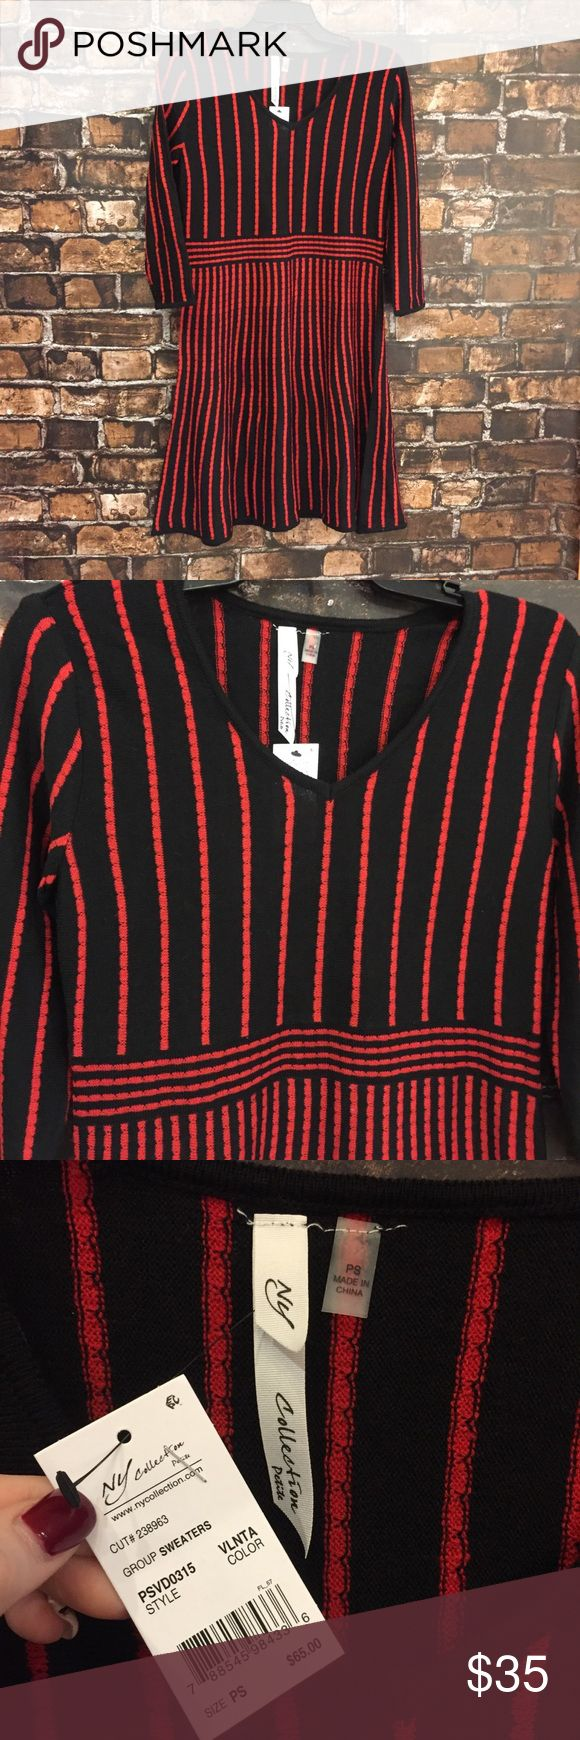 NY Collection Black & Red Striped Holiday Dress This dress is super cute and so so soft!!! Pair with your favorite sparkly tights and some heels for your Holiday party!! Super fun. New with tags!! (D140) Petite Small! NY Collection Dresses